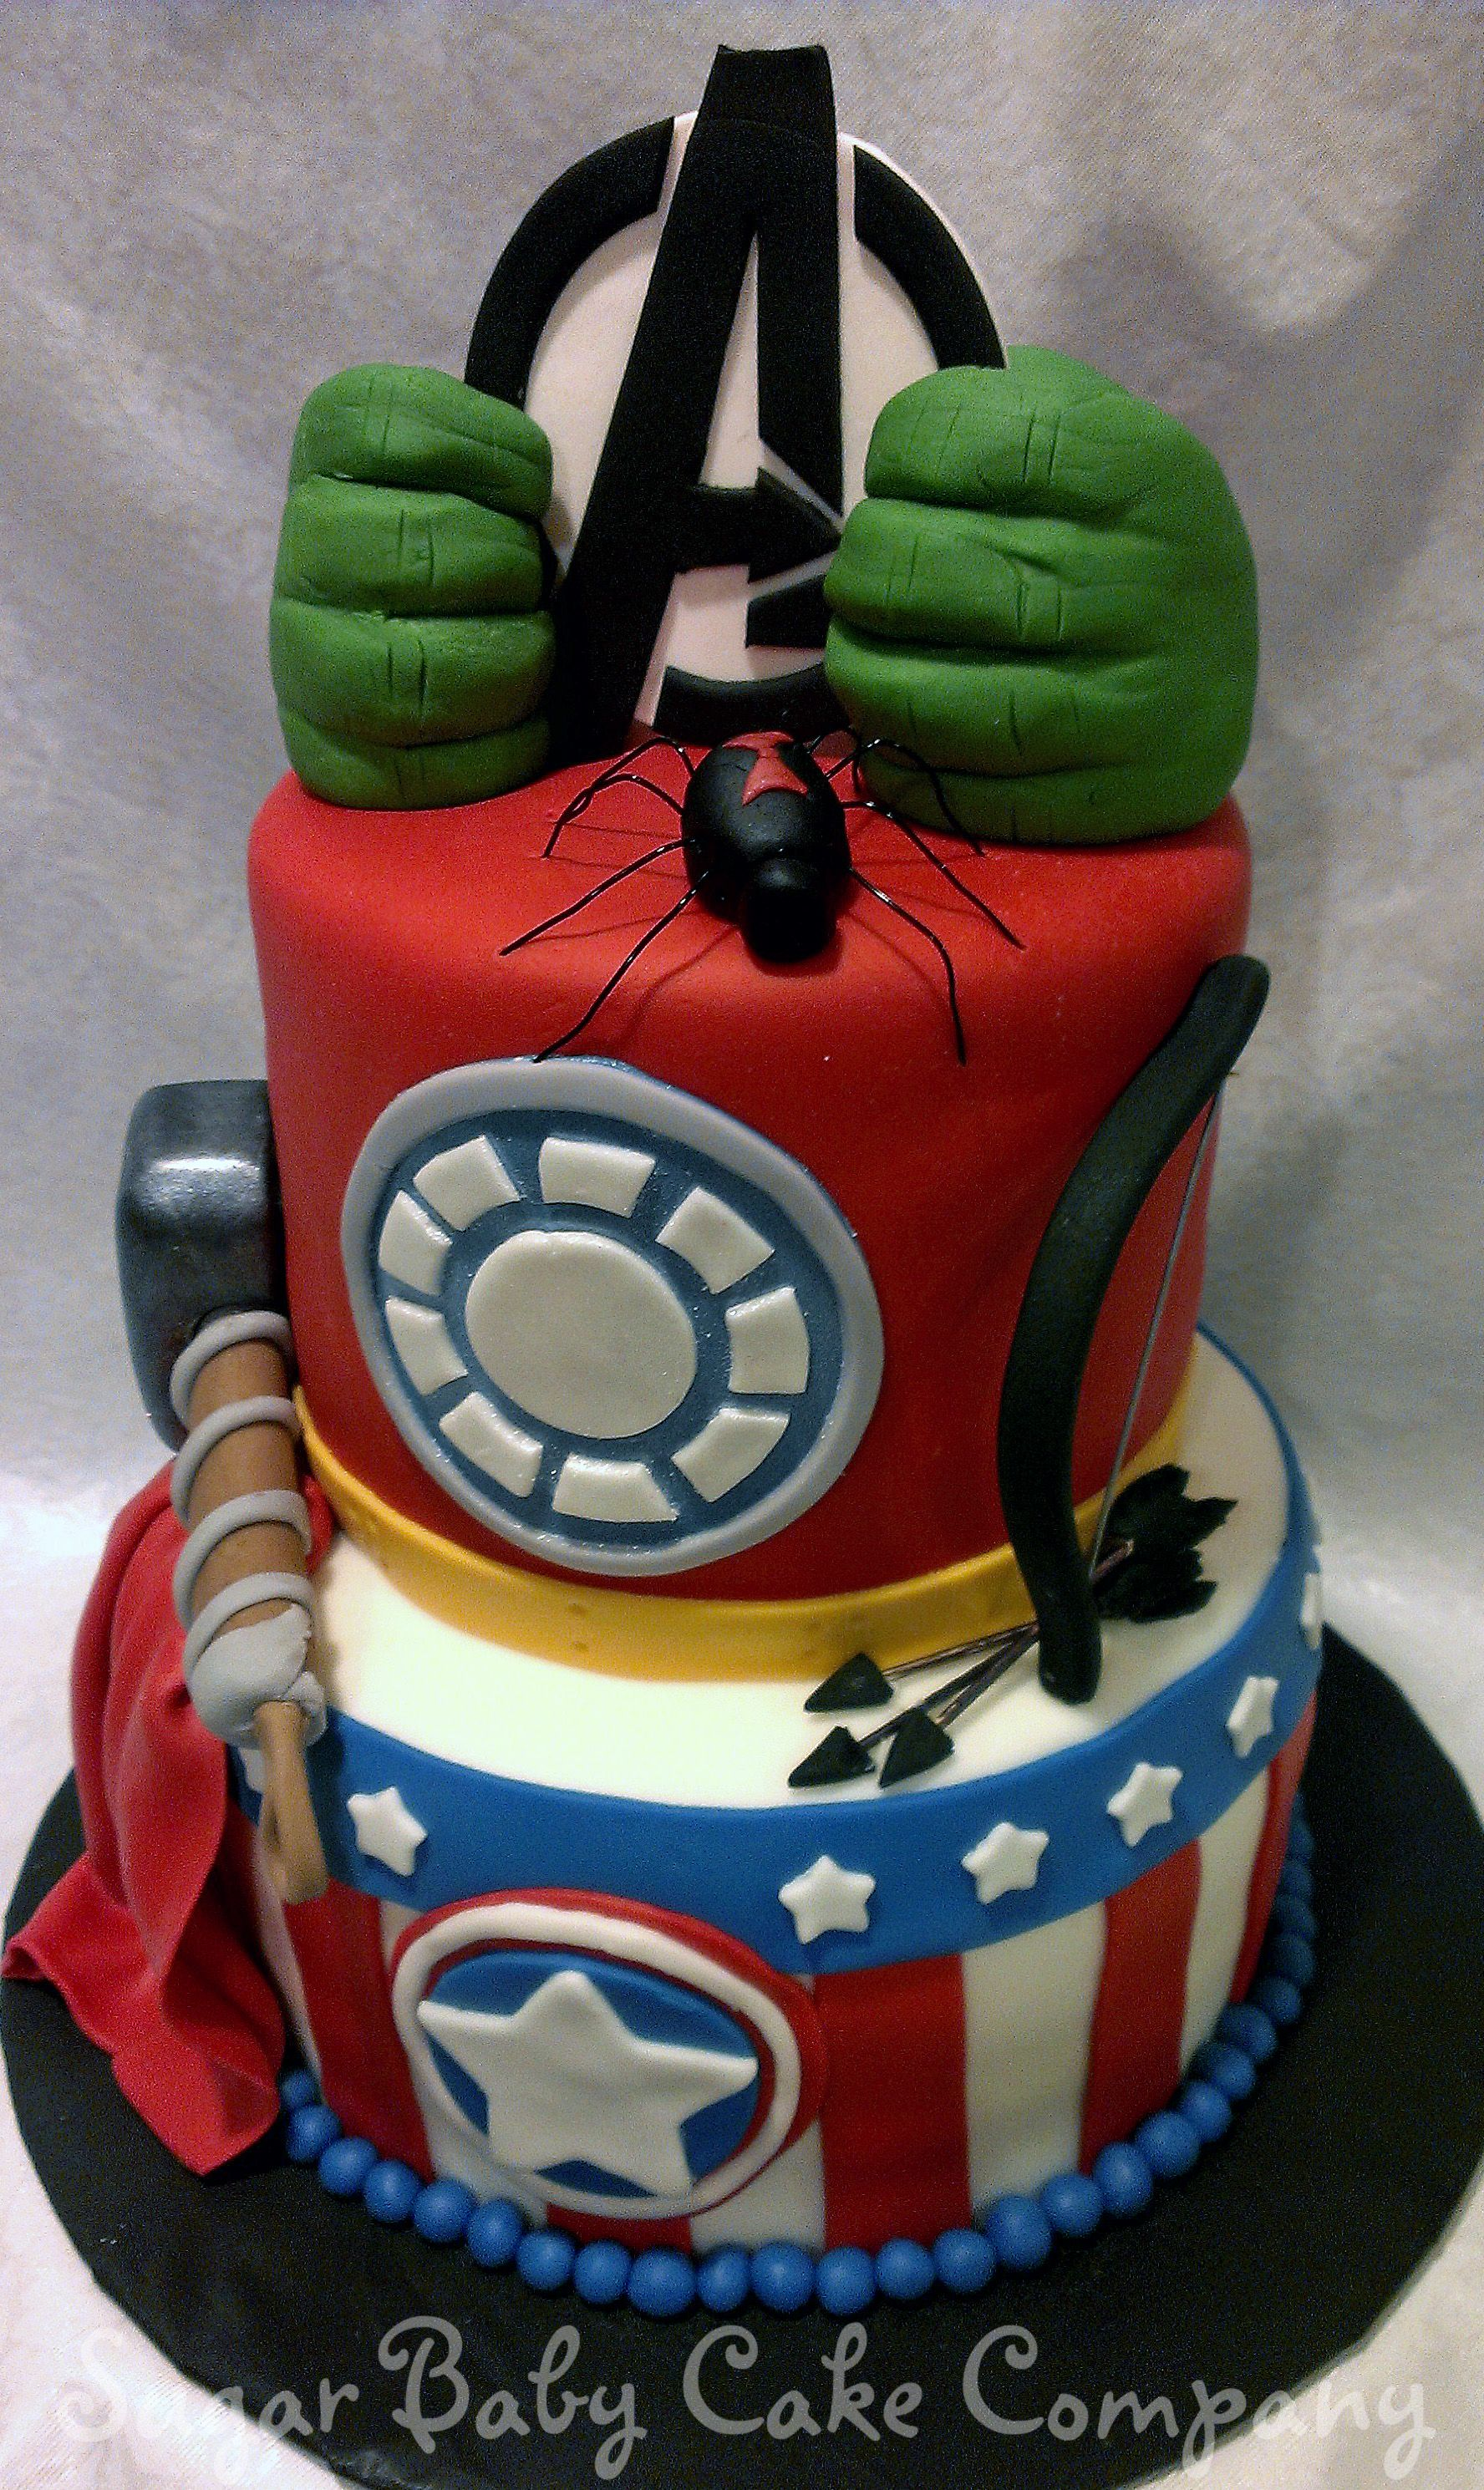 Avengers Birthday Cakes on Pinterest